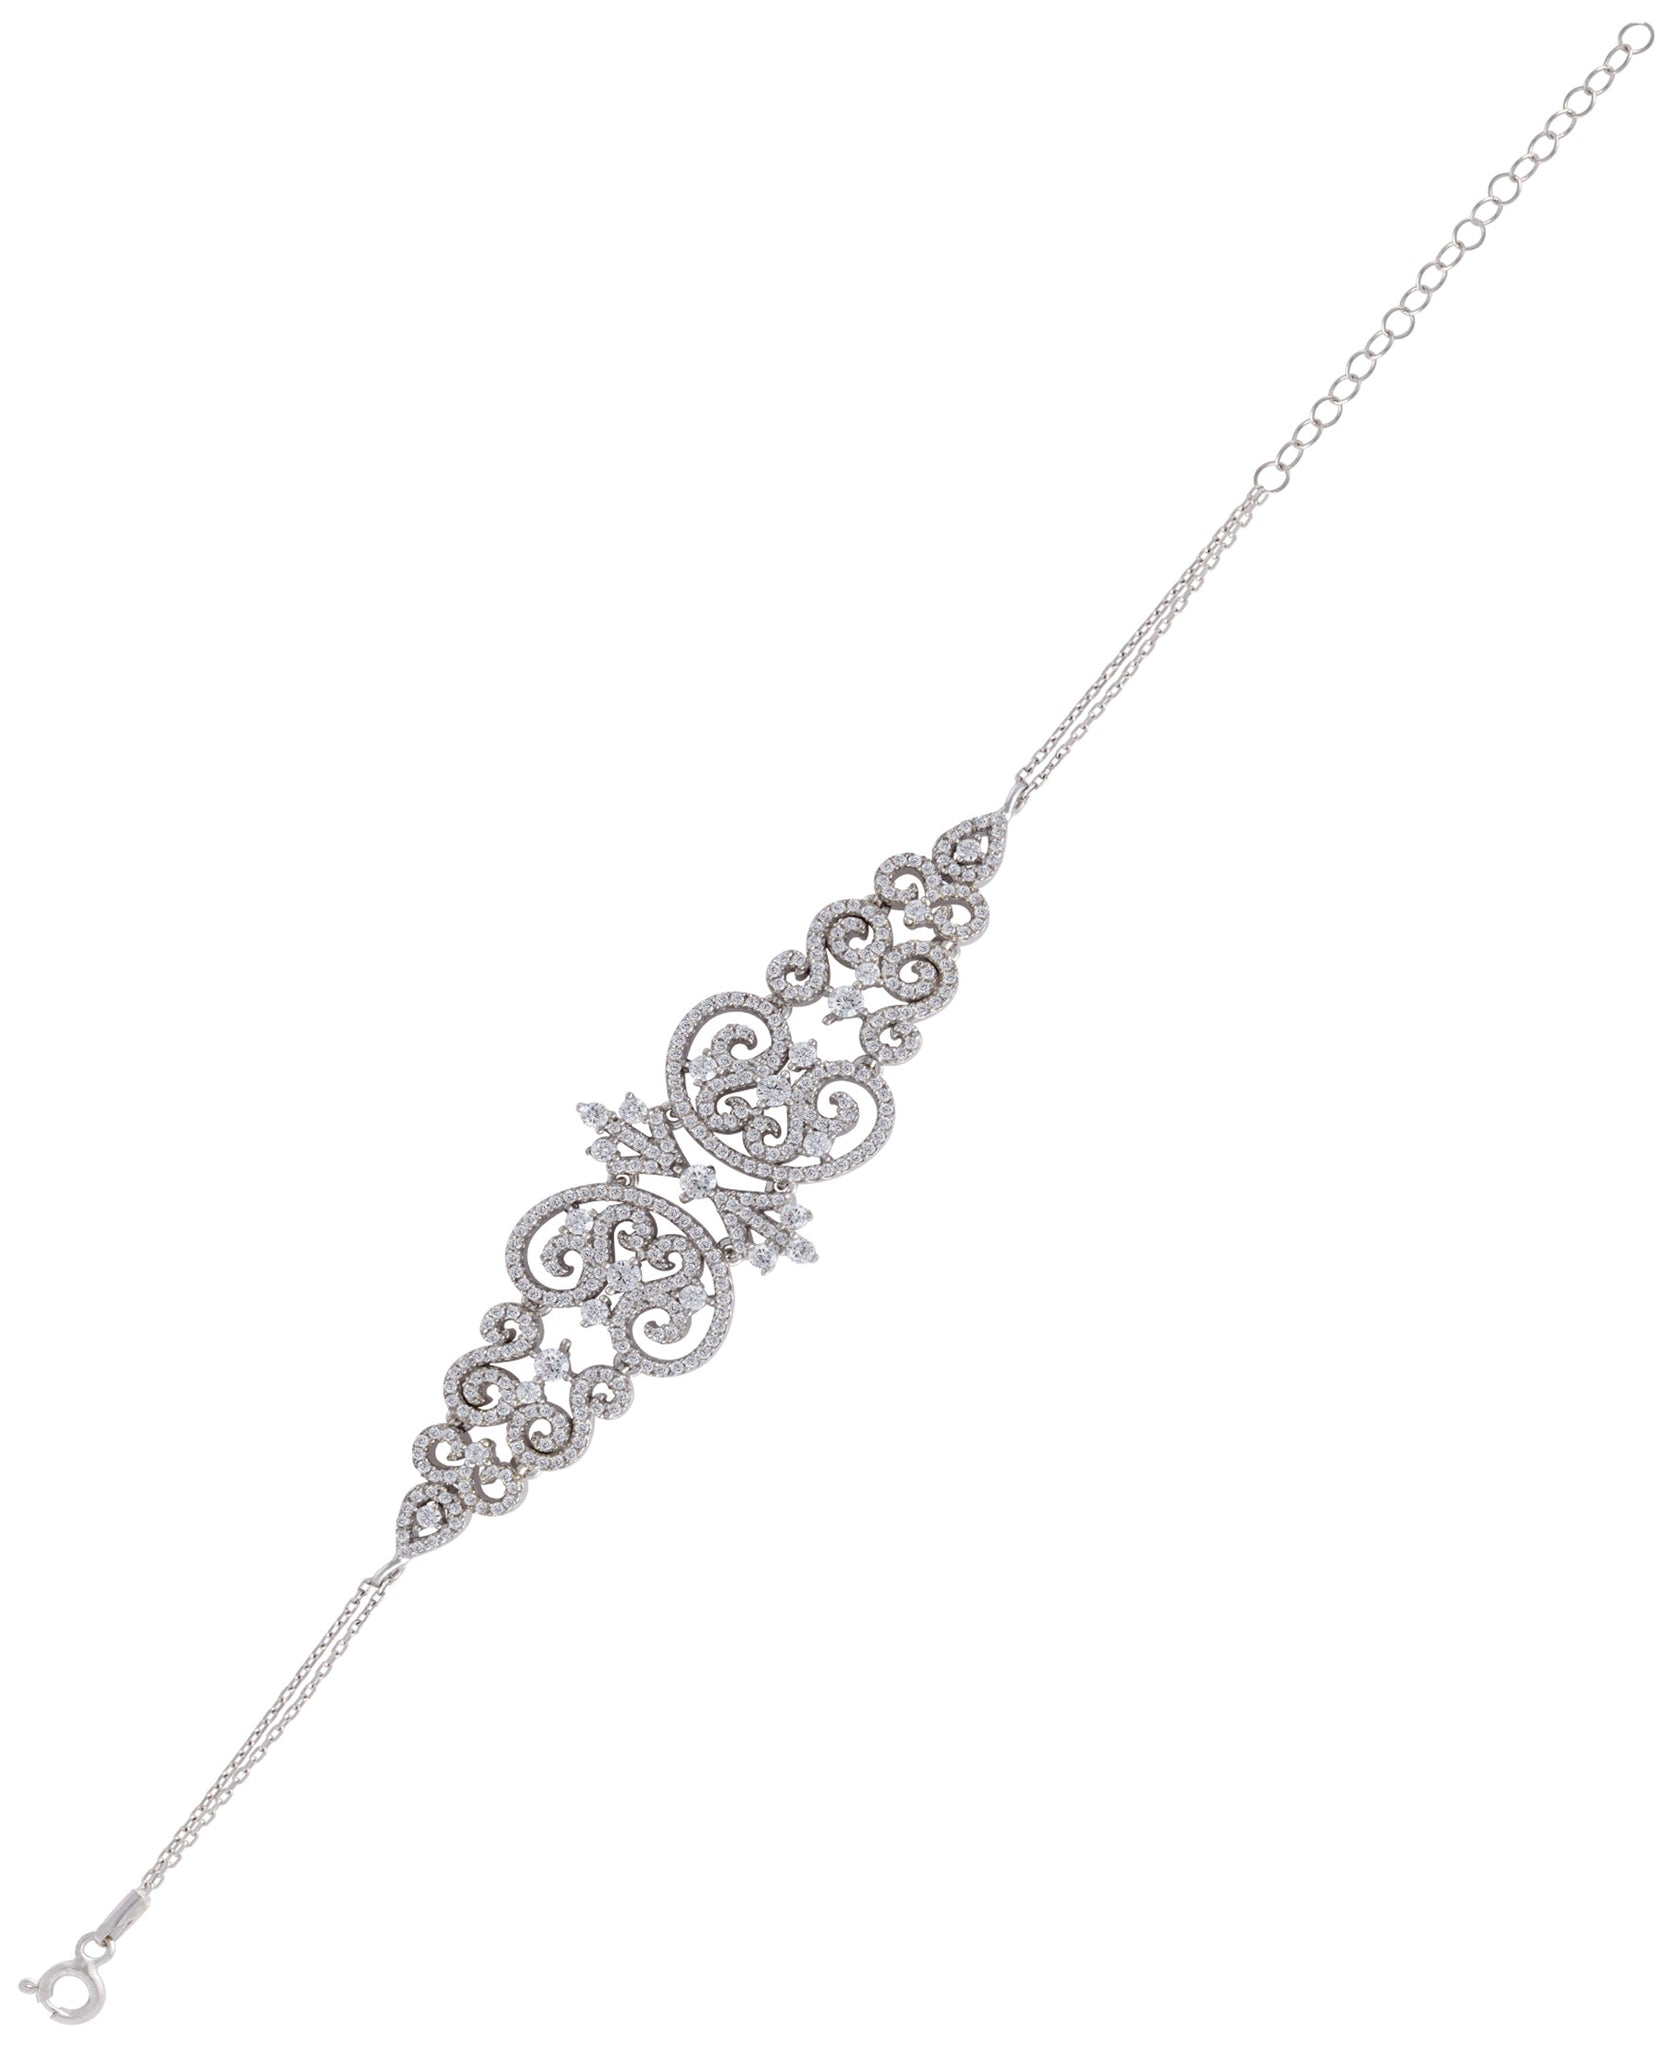 Rhona Sutton Tapered Crystal Damask Sterling Silver Chain Bracelet - Rhona Sutton Jewellery